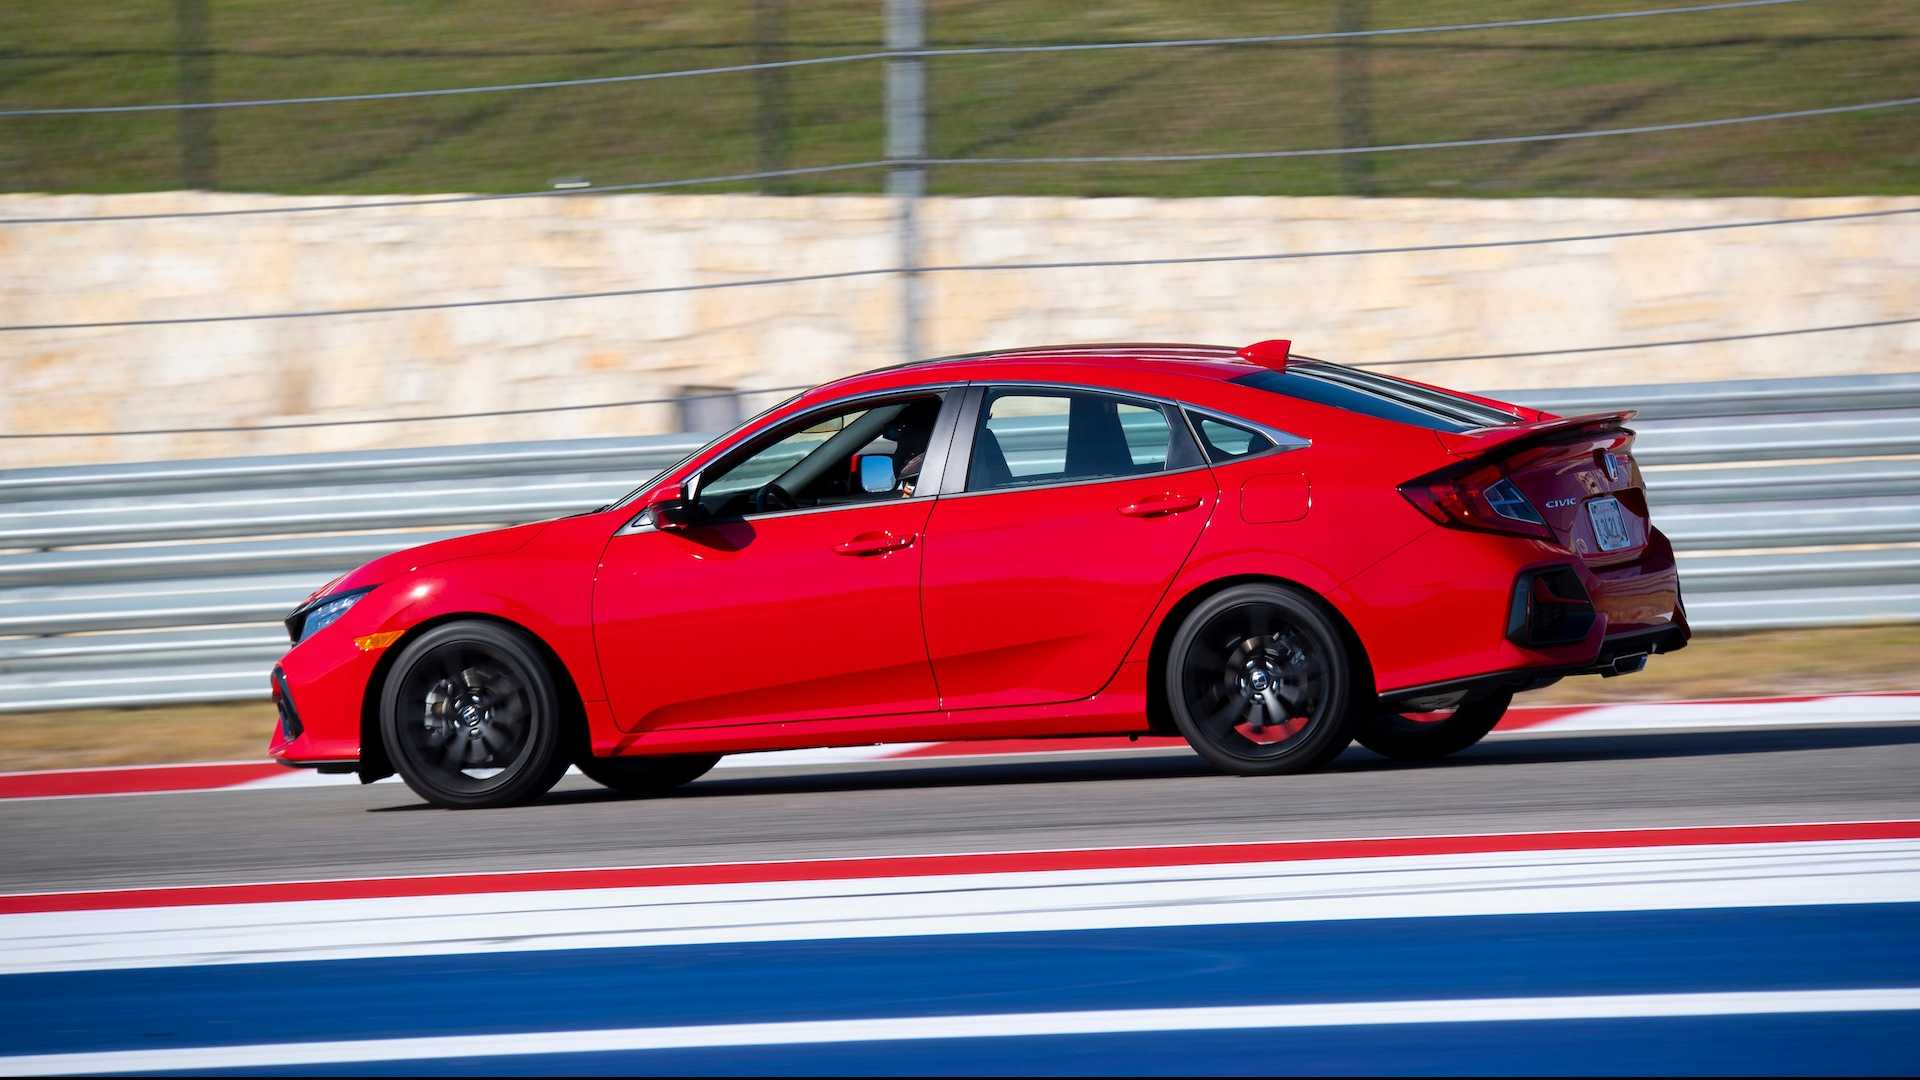 Current Honda Civic Si Lease Deals Better Than The Toyota Corolla